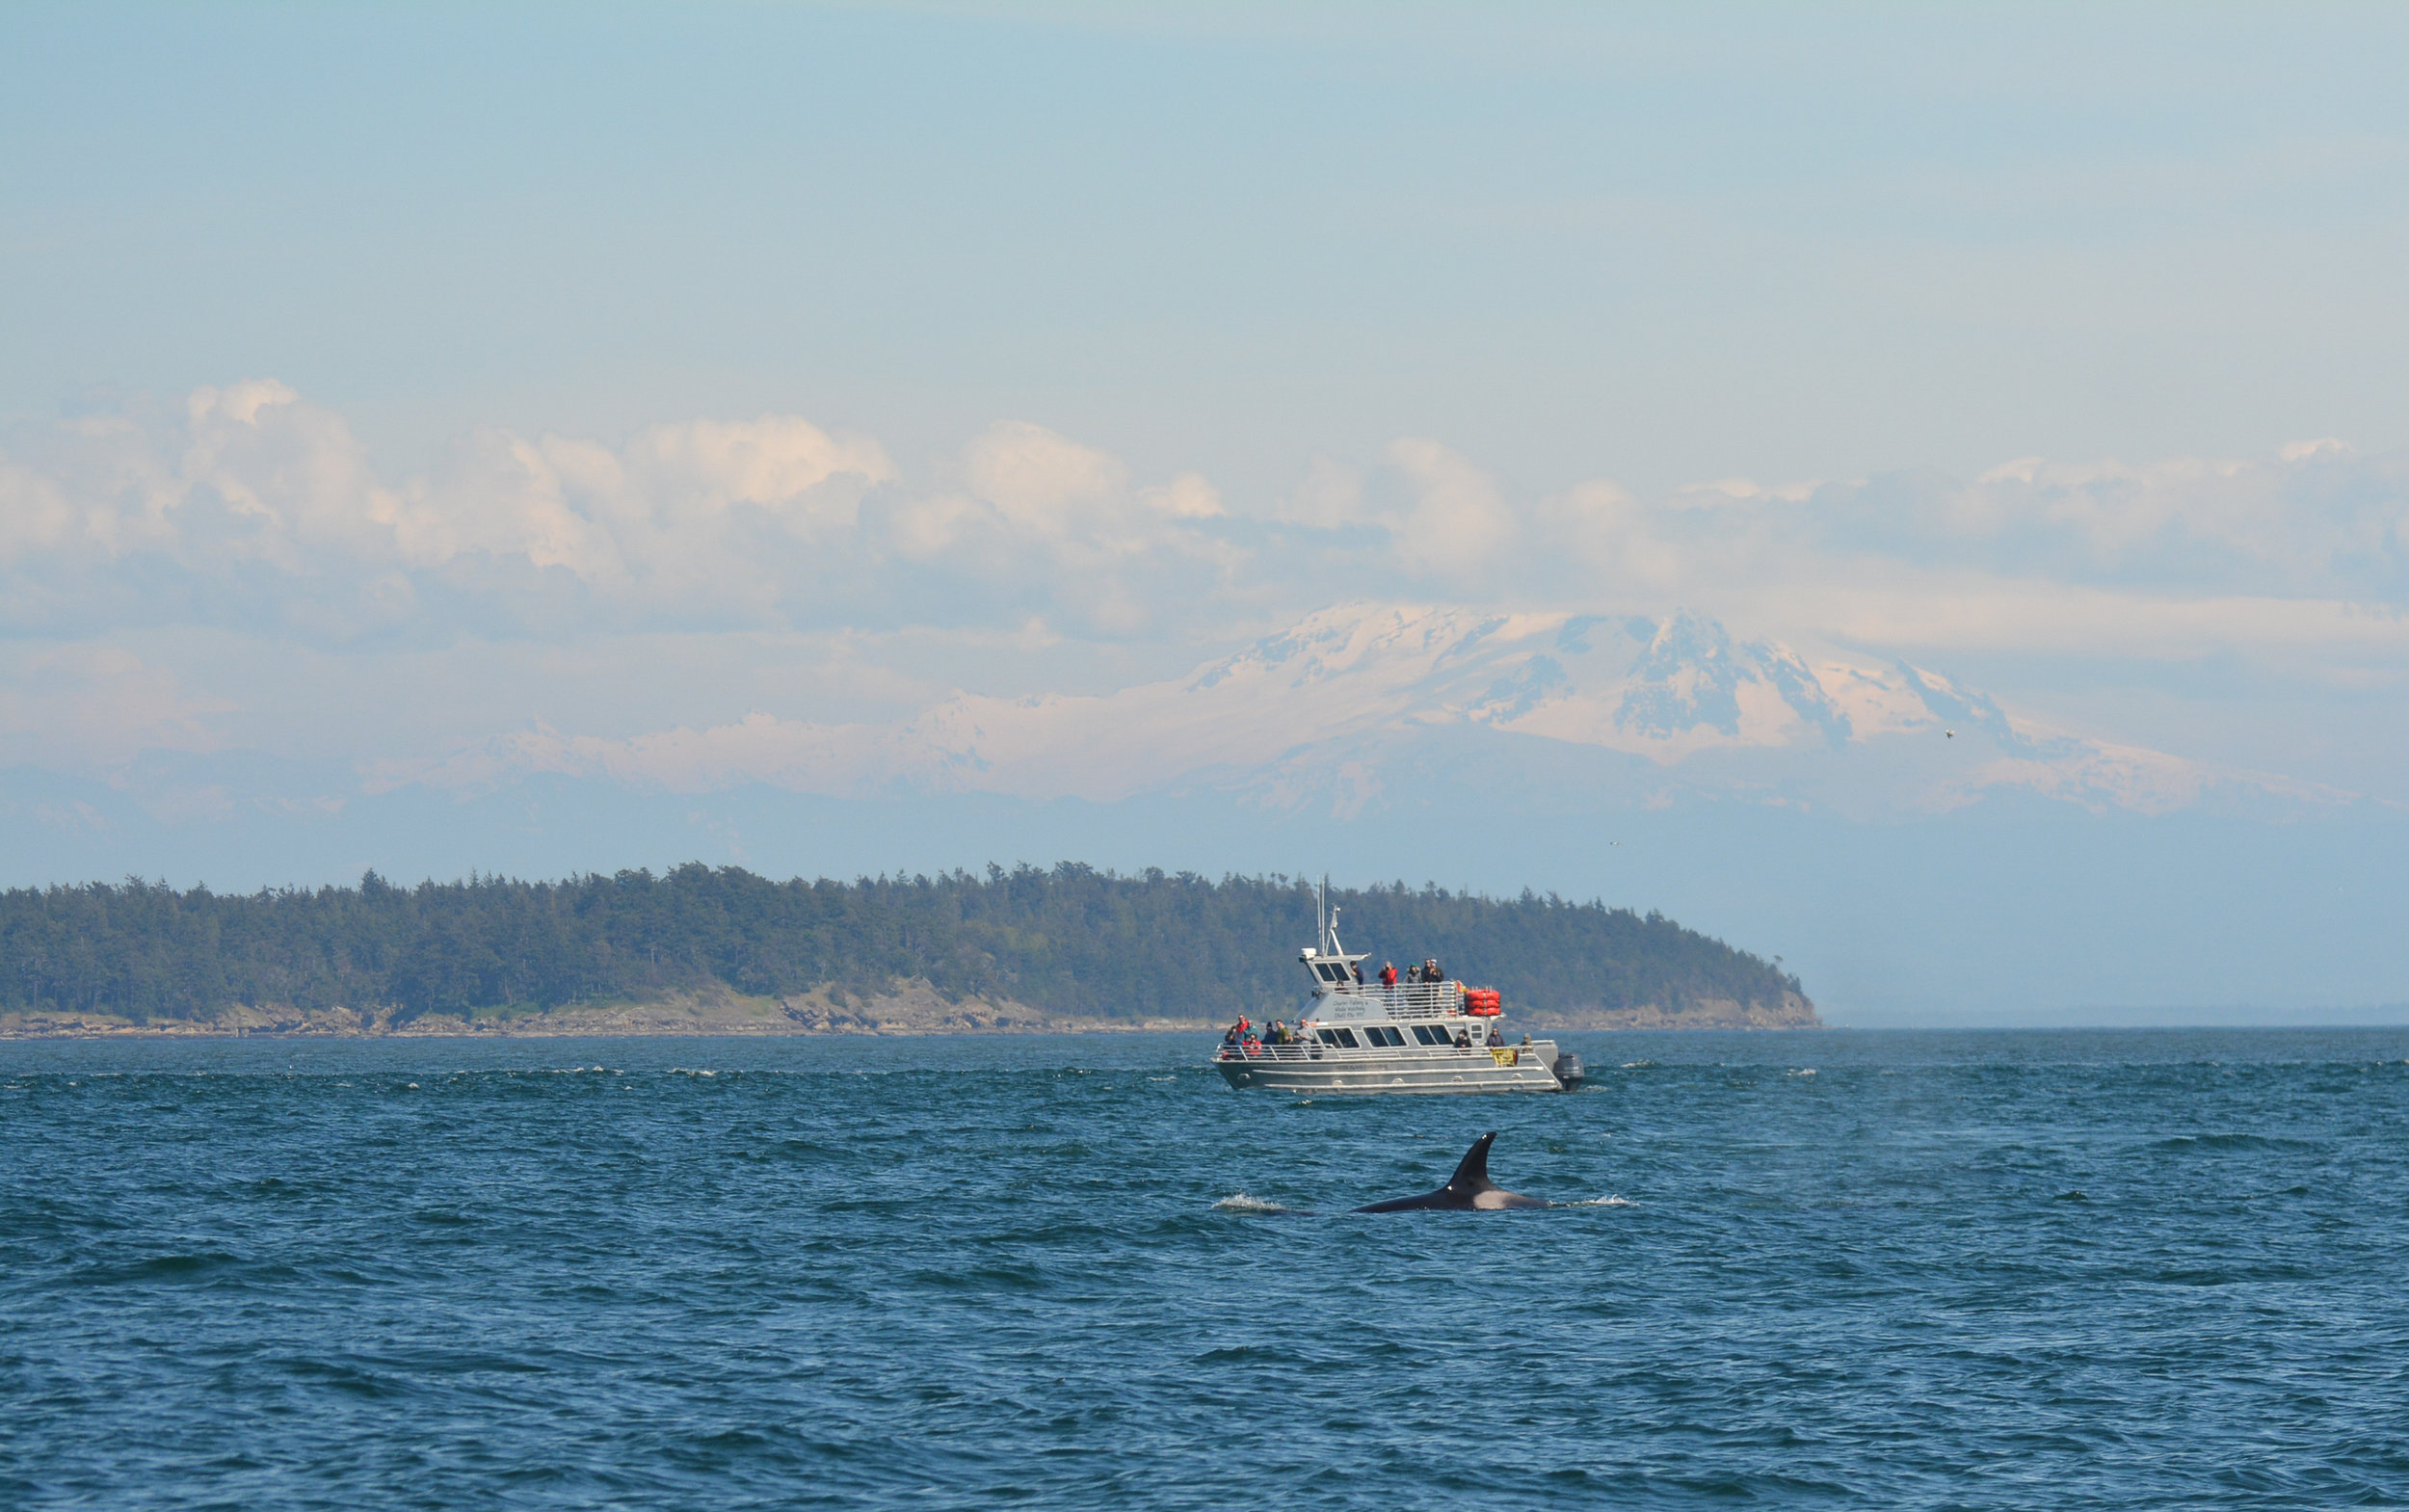 Whales with a mountain backdrop - does it get more British Columbia than this?? Photo by James Clyburn